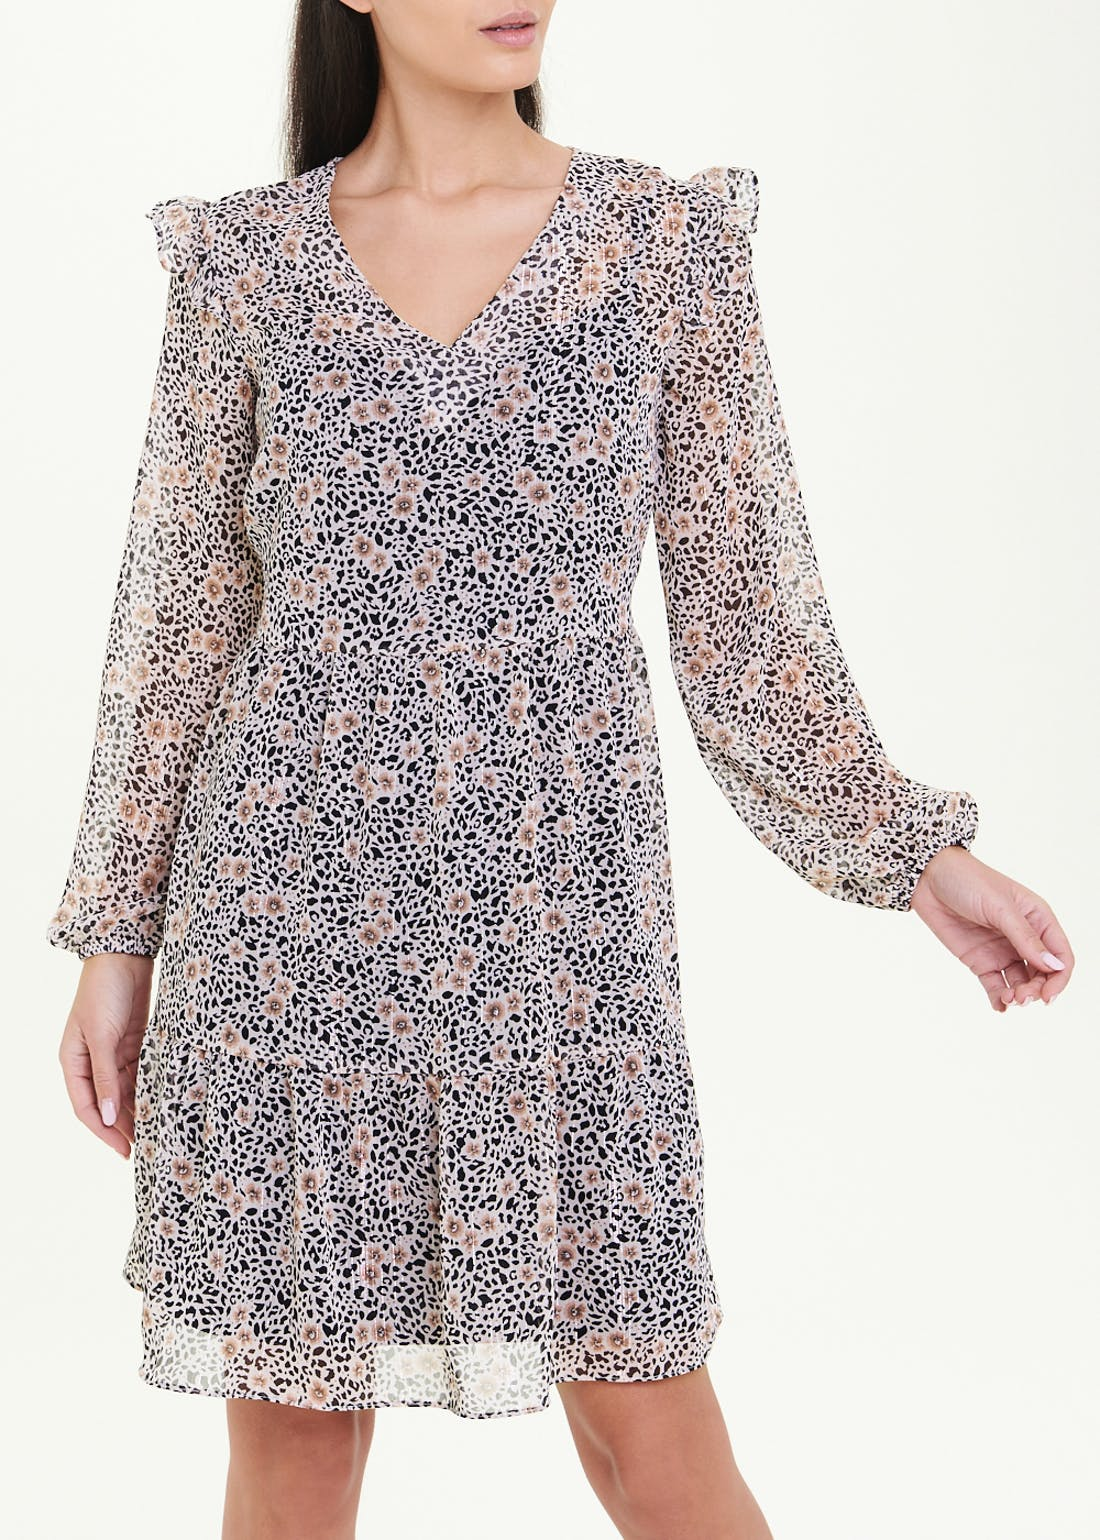 Long Sleeve Animal Print Chiffon Dress